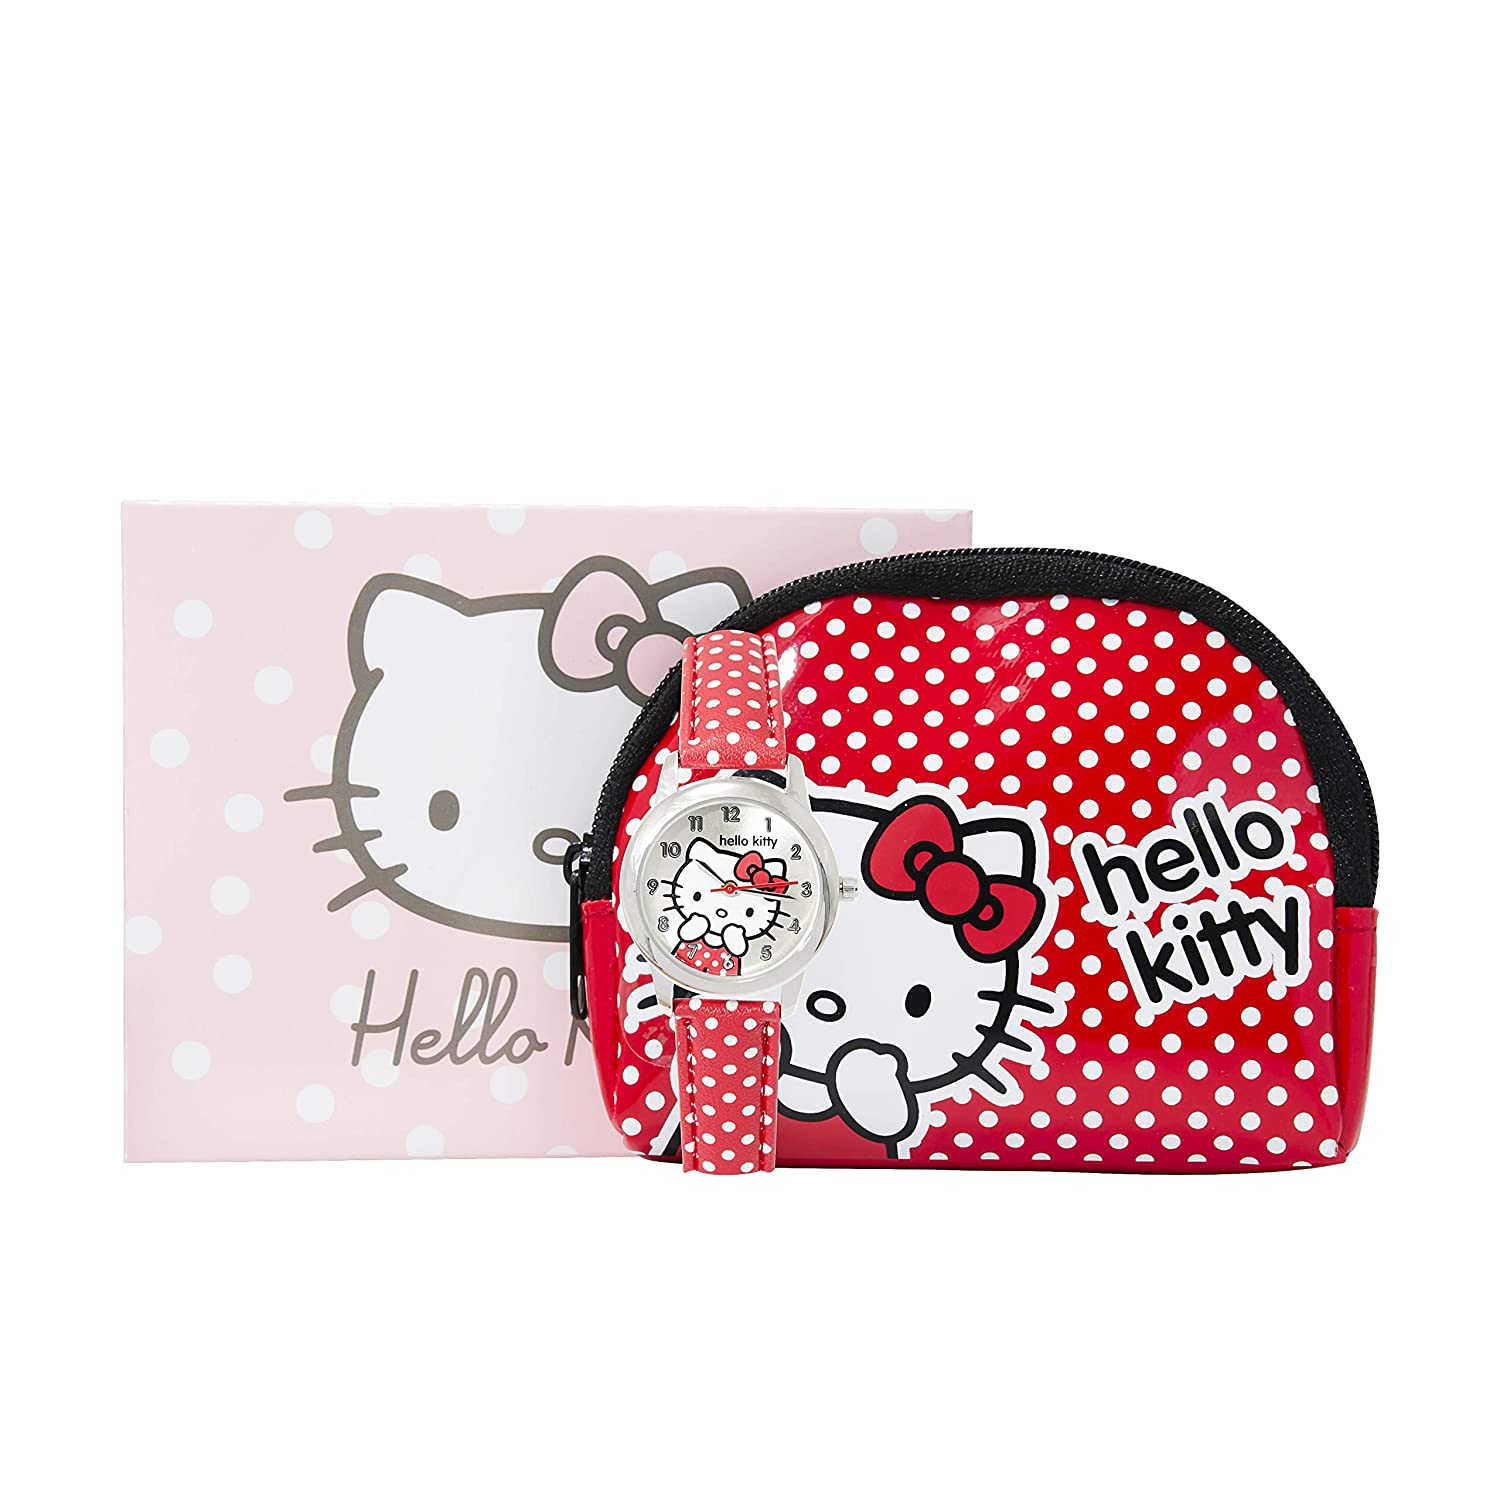 Coffret Montre Hello Kitty / Sanrio Rouge à pois - Bracelet cuir / Leather / Pochette - Pouch